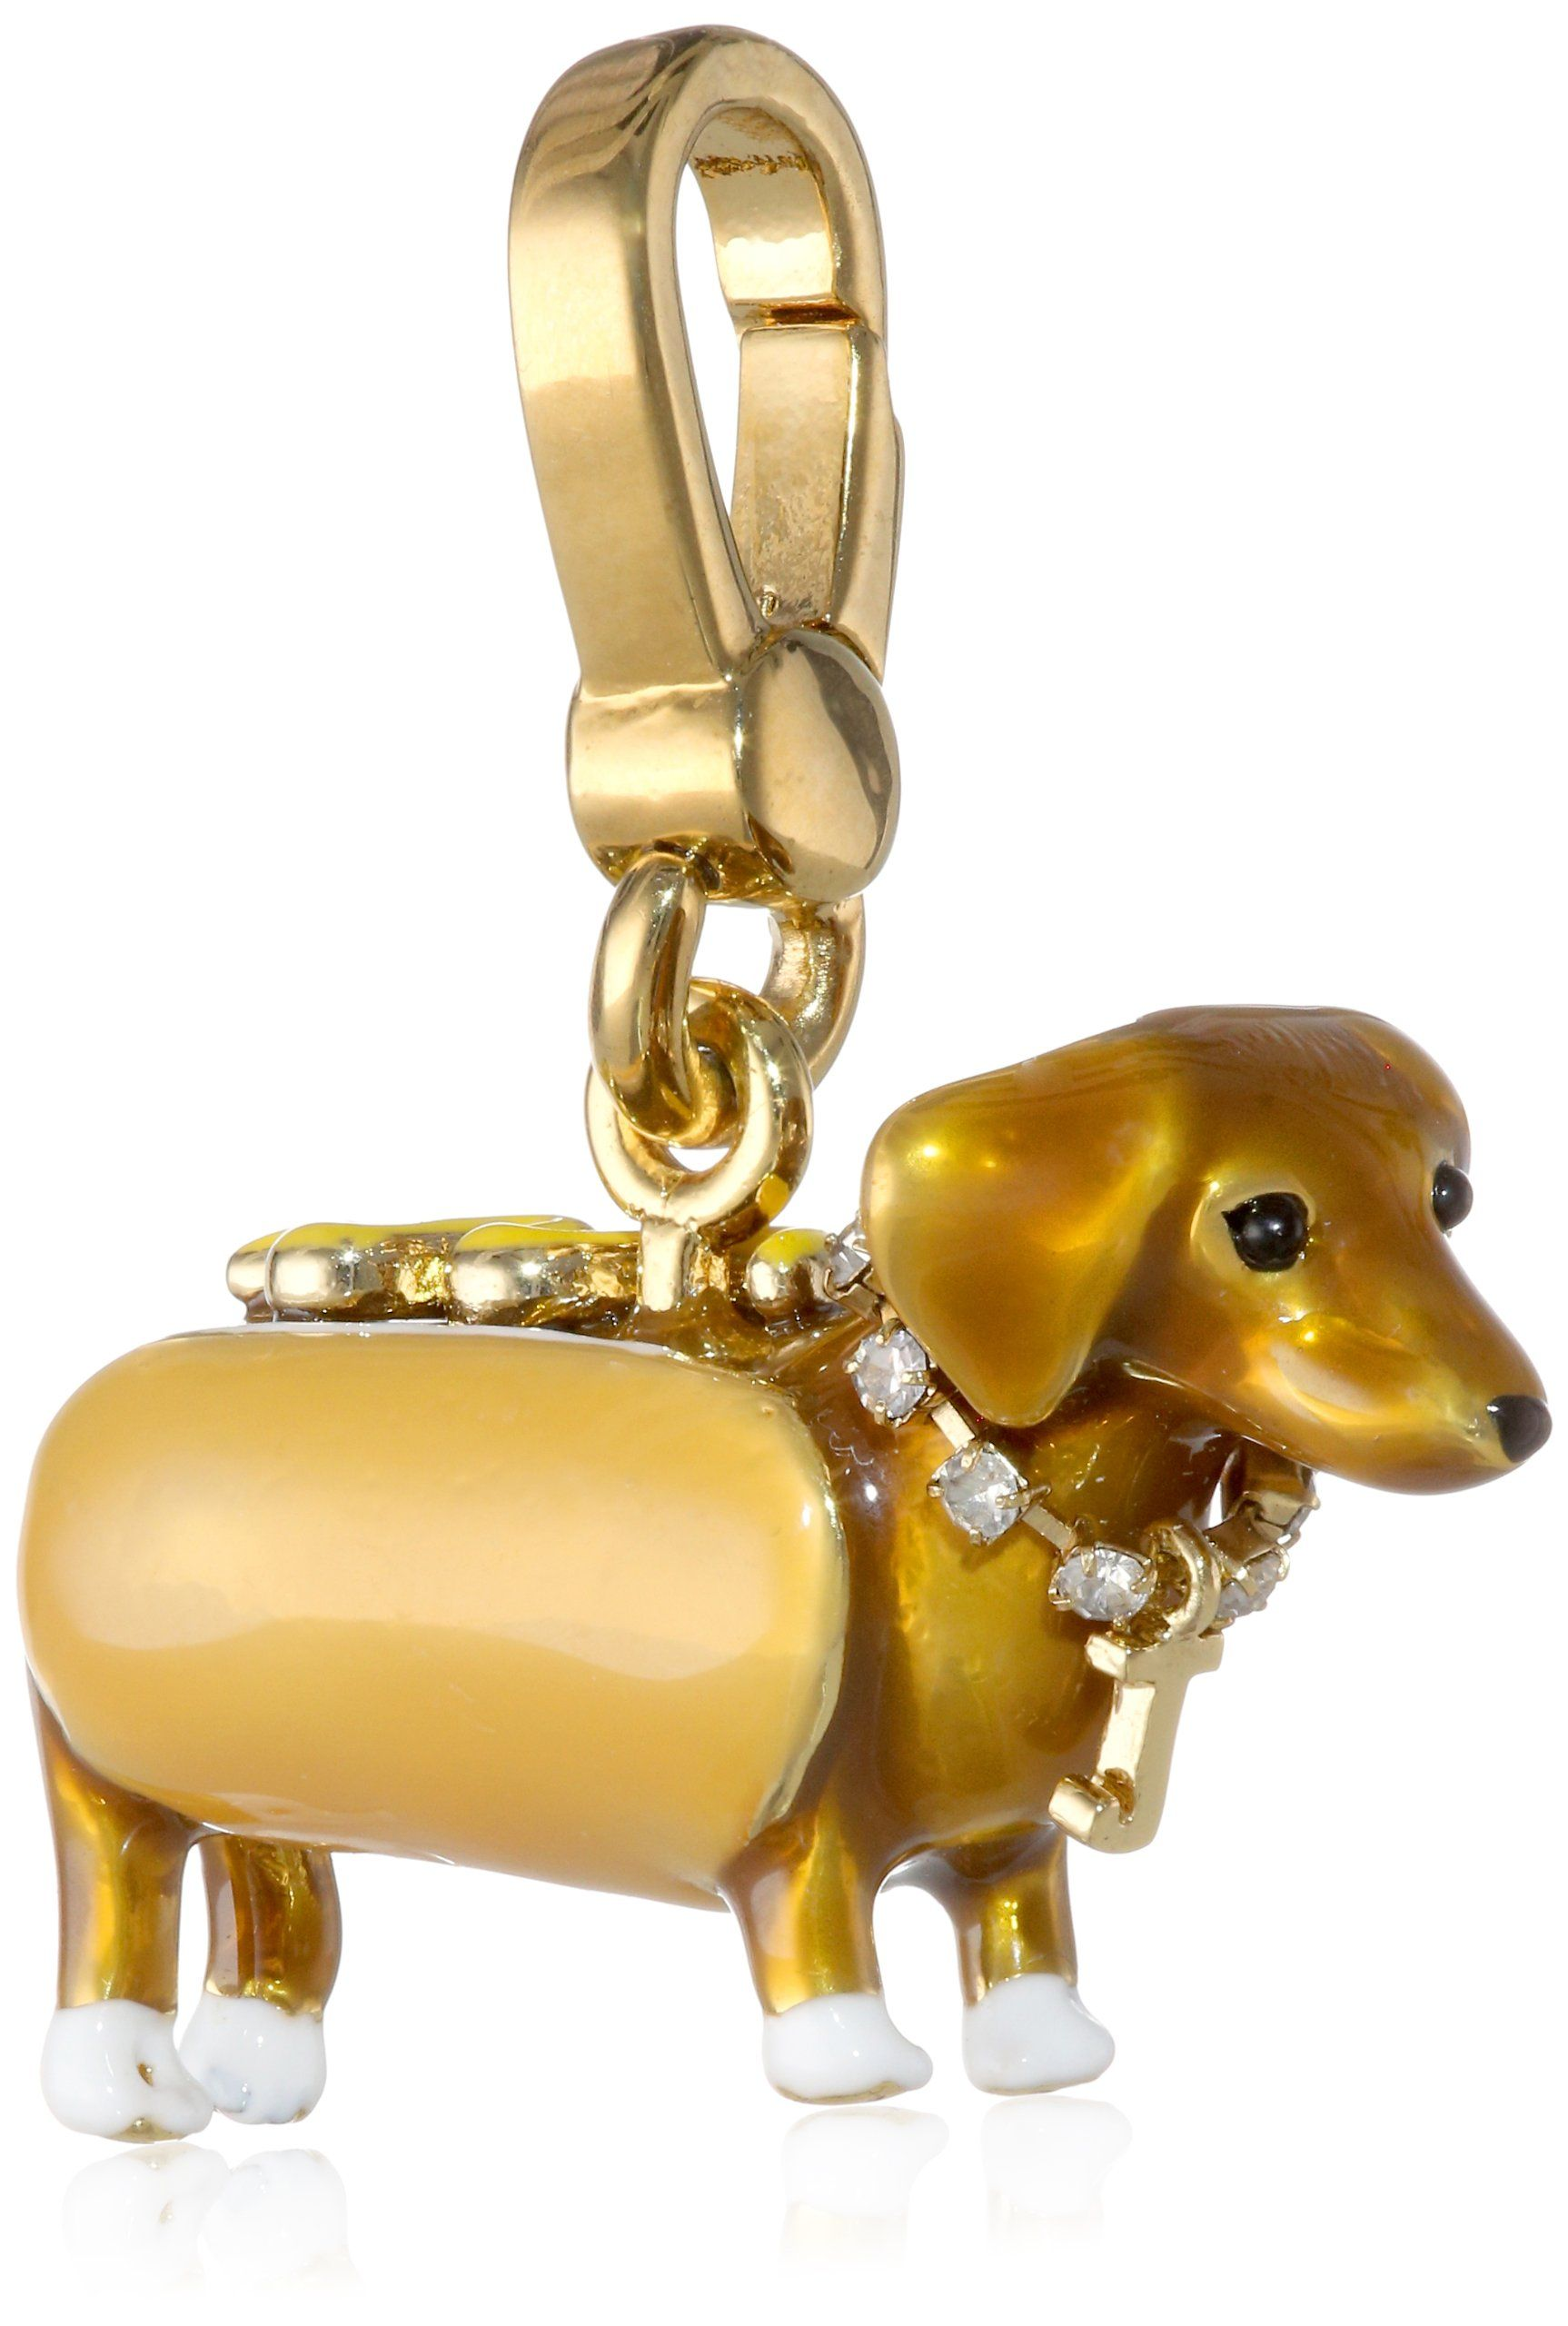 Juicy Couture Dachshund In A Hot Dog Bun Charm Dachshund Lovers